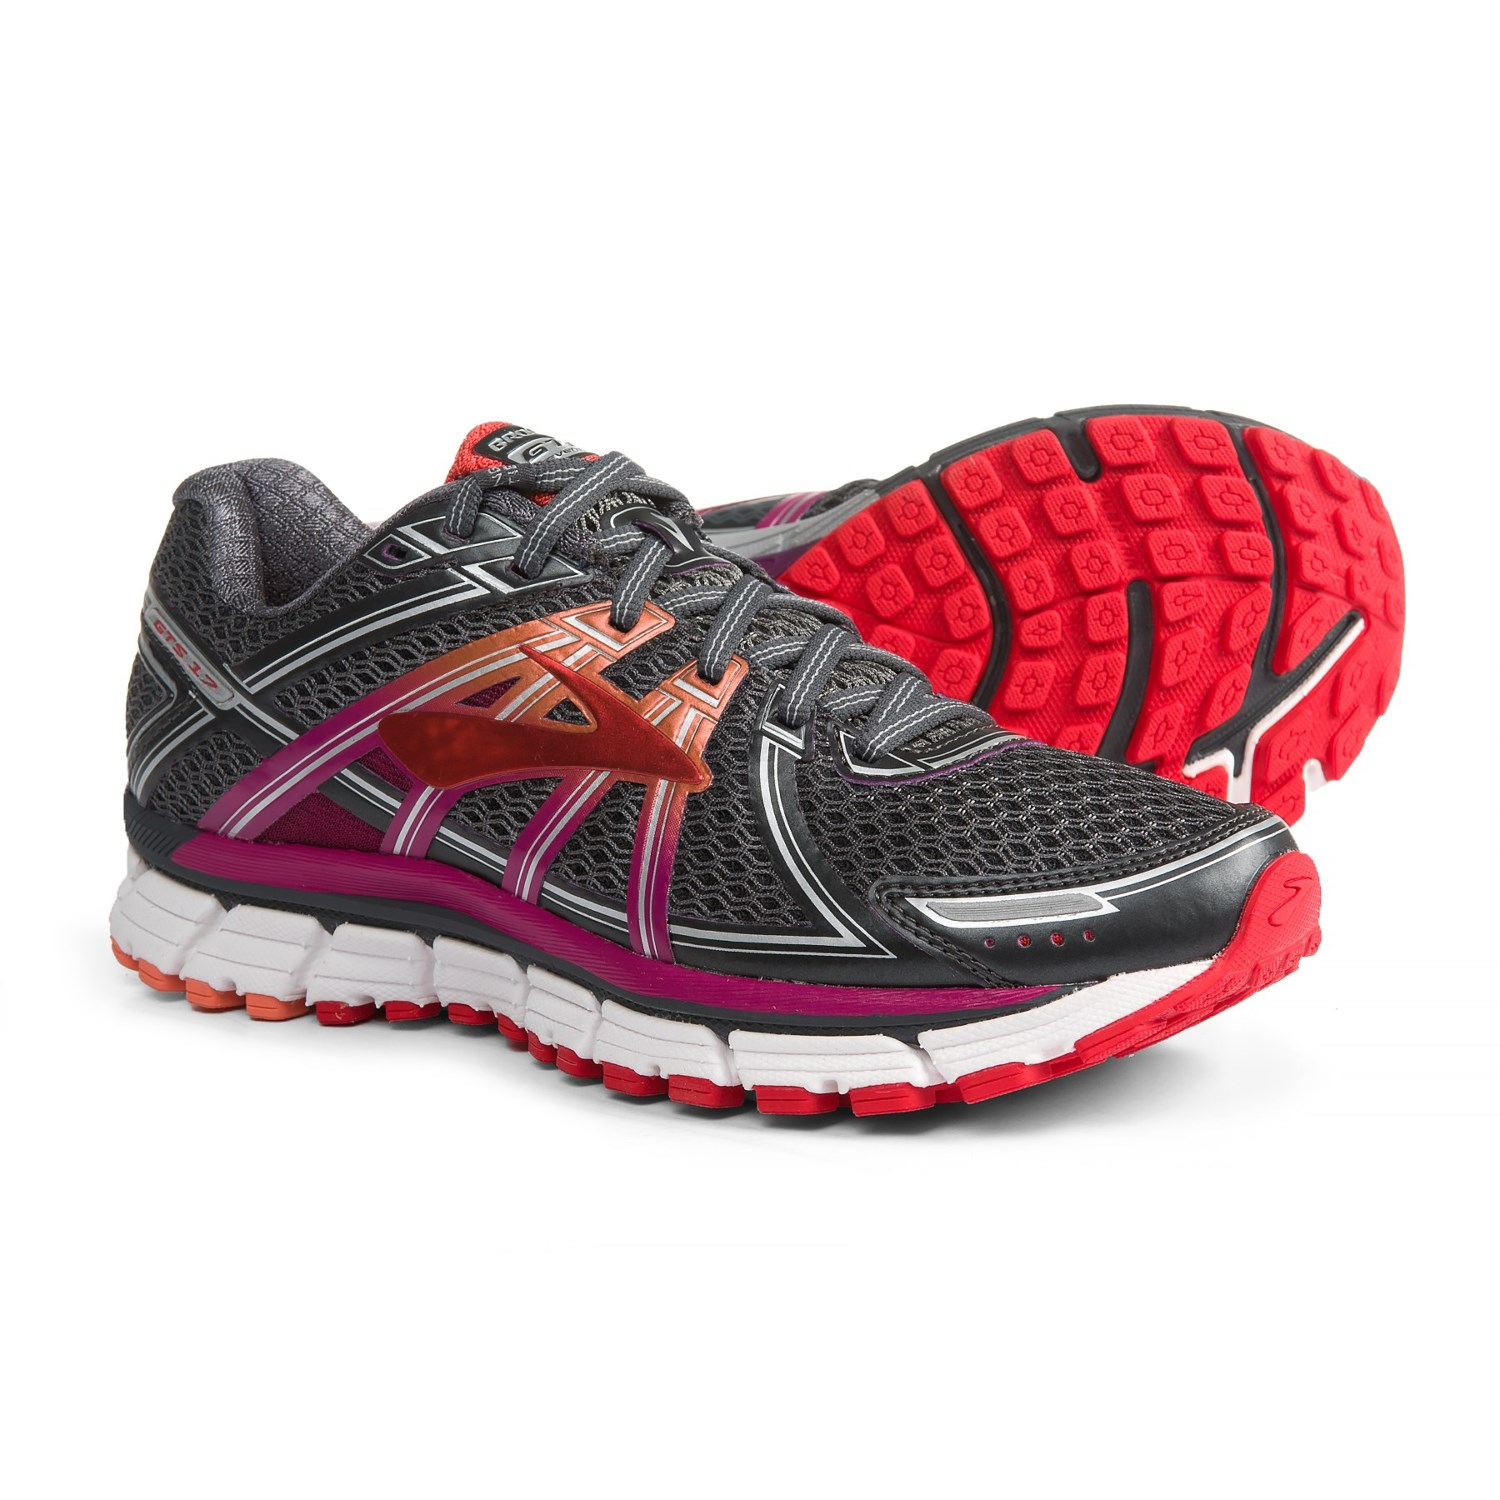 132bfb7e27783 Brooks Adrenaline GTS 17 Running Shoes (For Women) in Anthracite Festival  Fuchsia